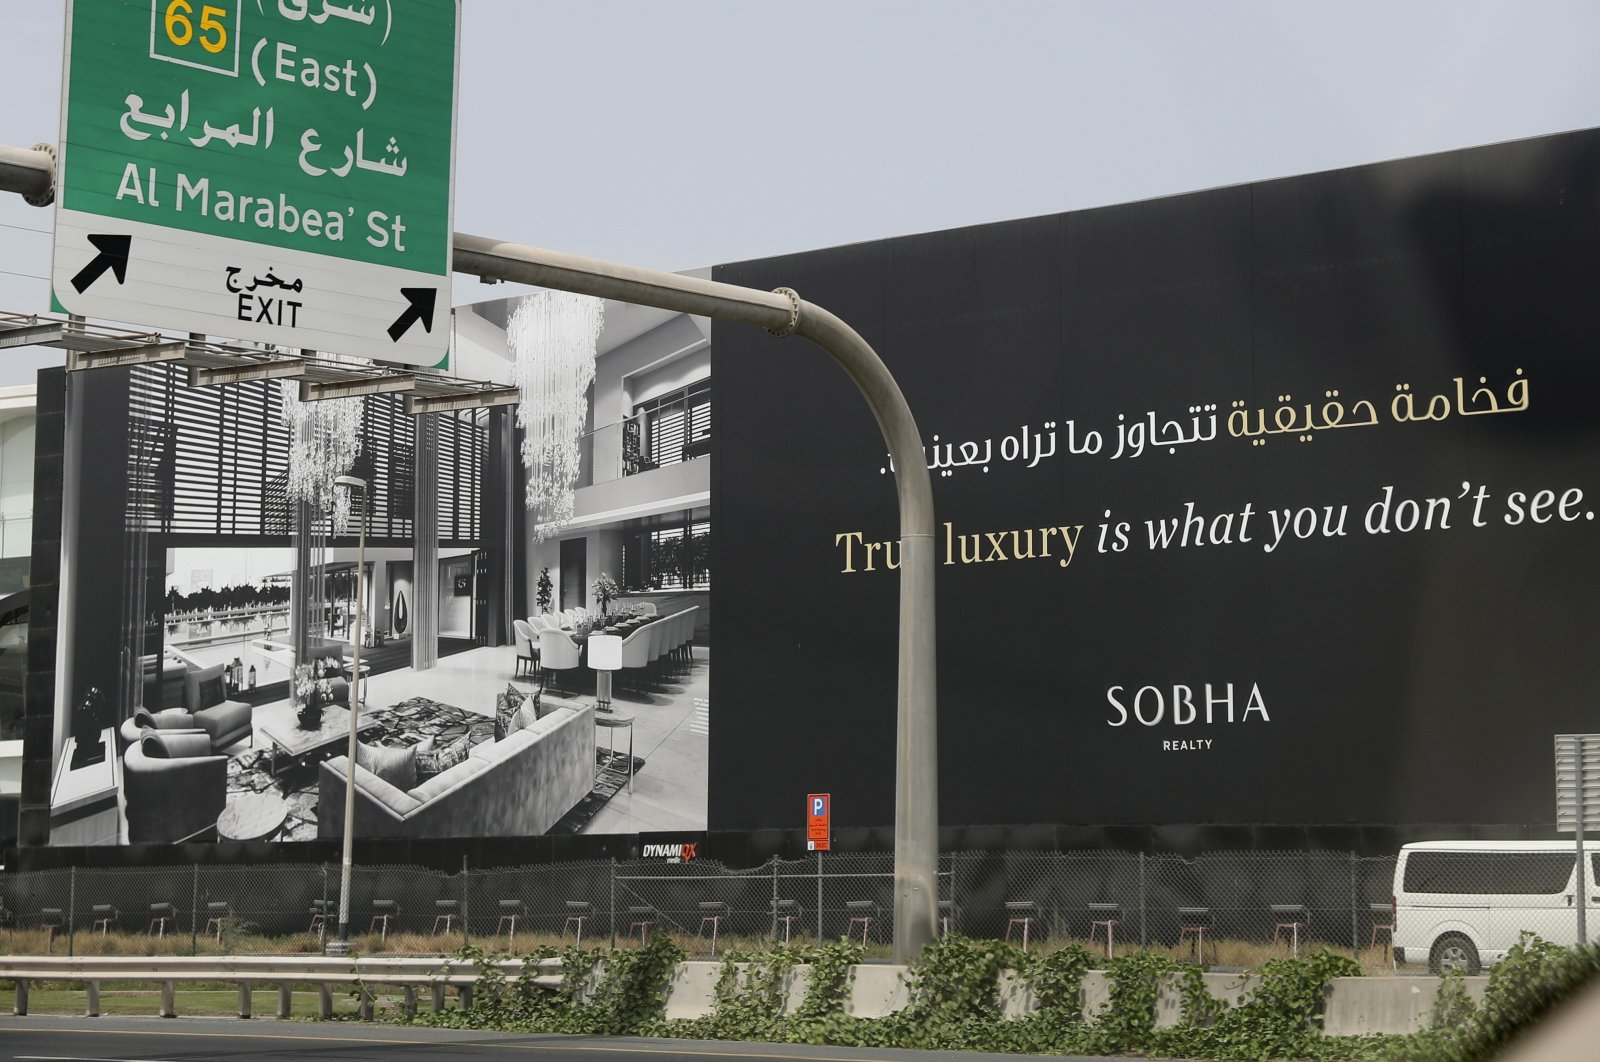 A billboard advertises a luxury residential project along a highway in Dubai, United Arab Emirates, May 5, 2021. (AP Photo)